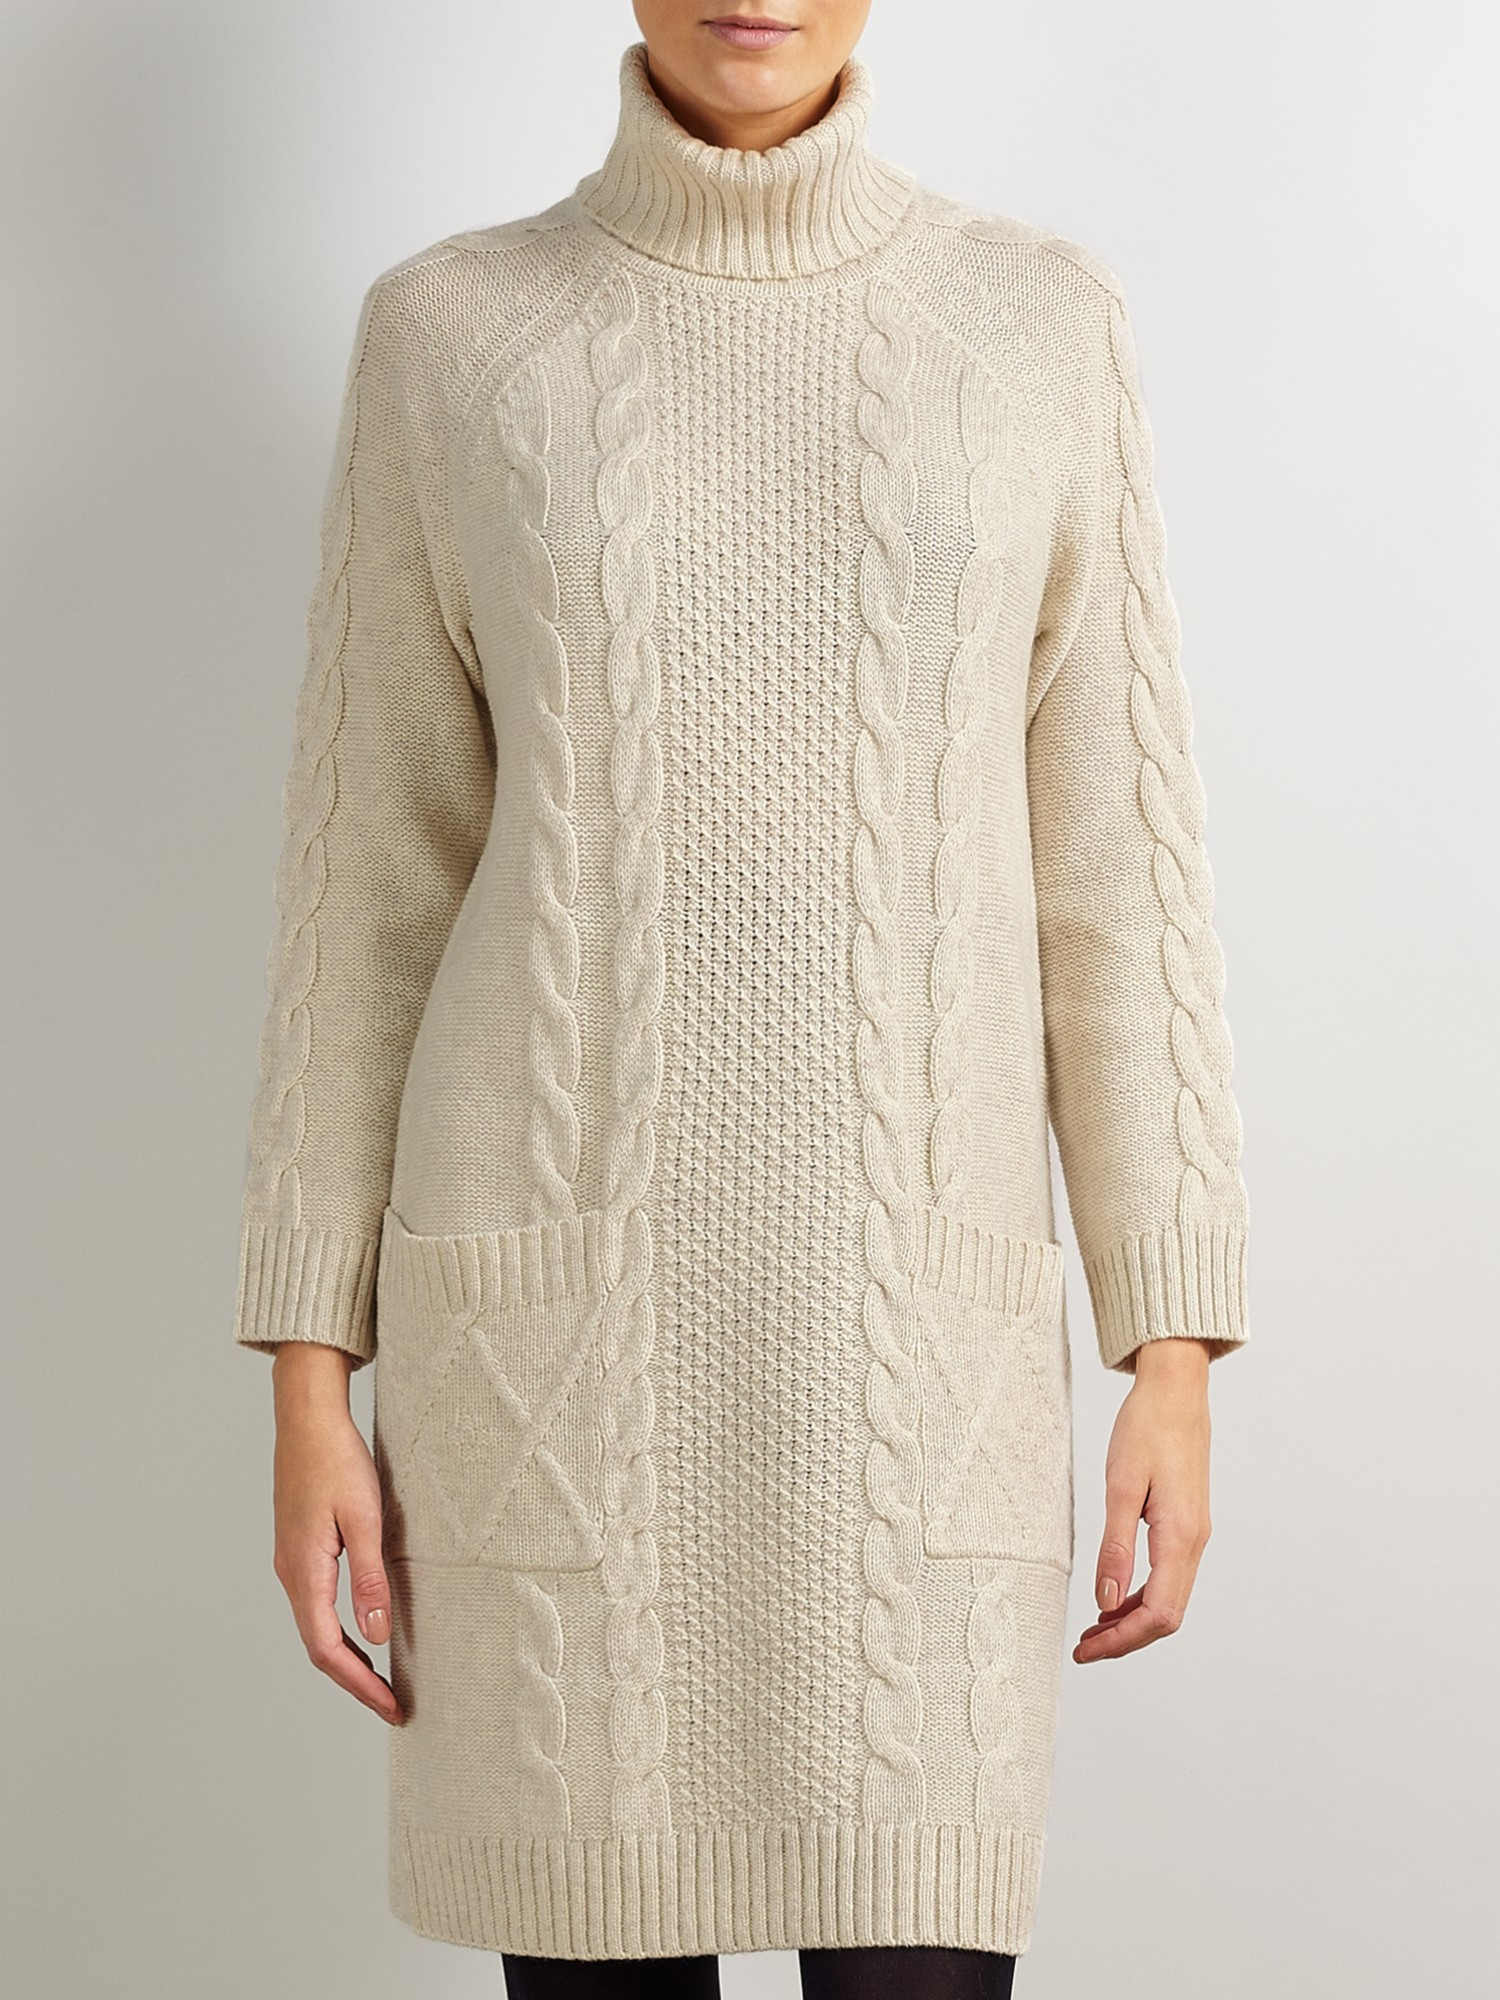 3a13702bf1769 Somerset by Alice Temperley Knitted Dress in Natural - Lyst